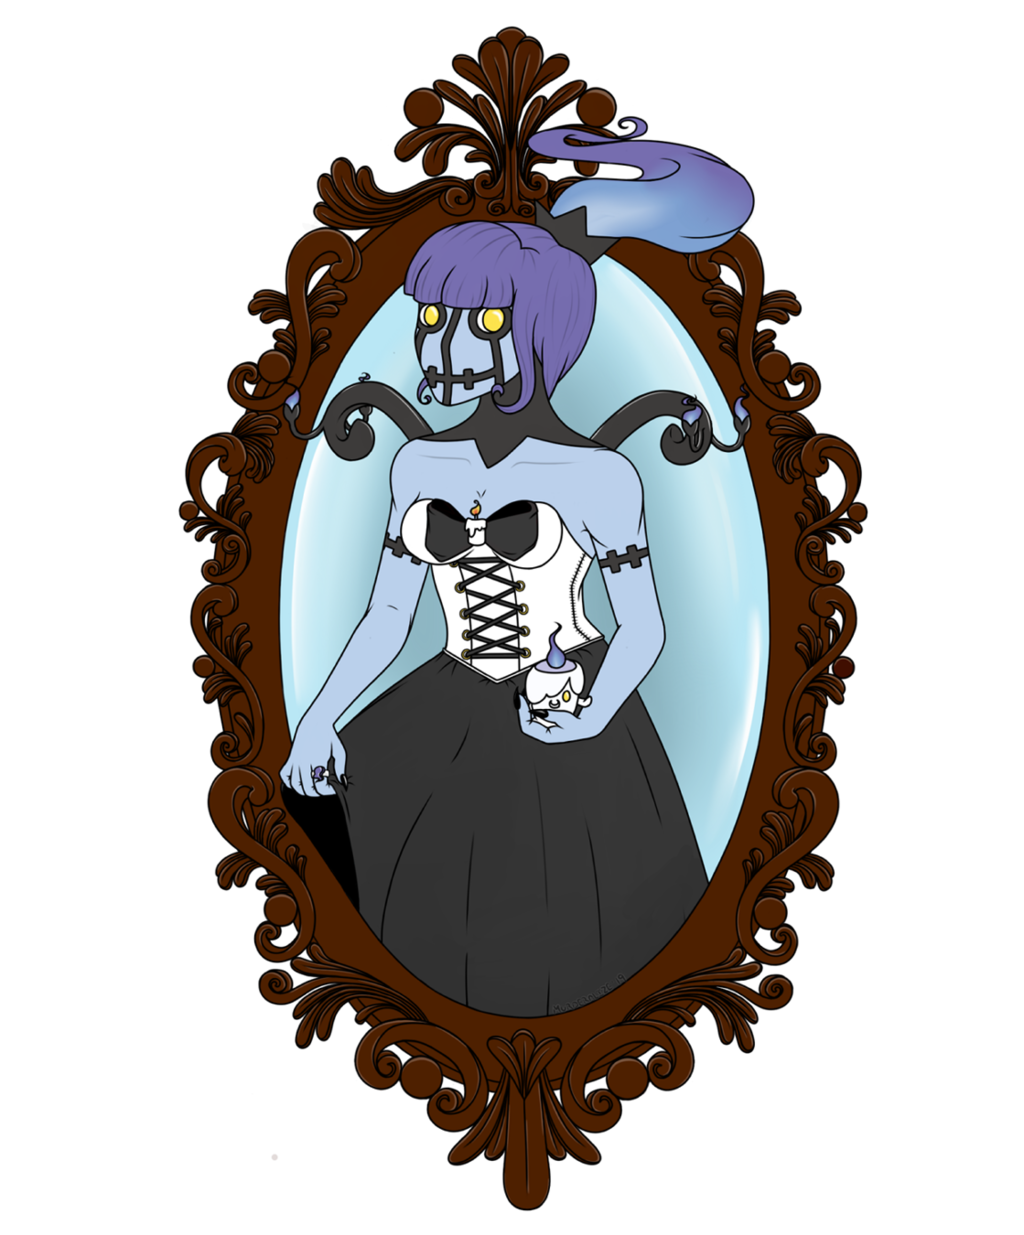 Most recent image: Spoopy Ghosty